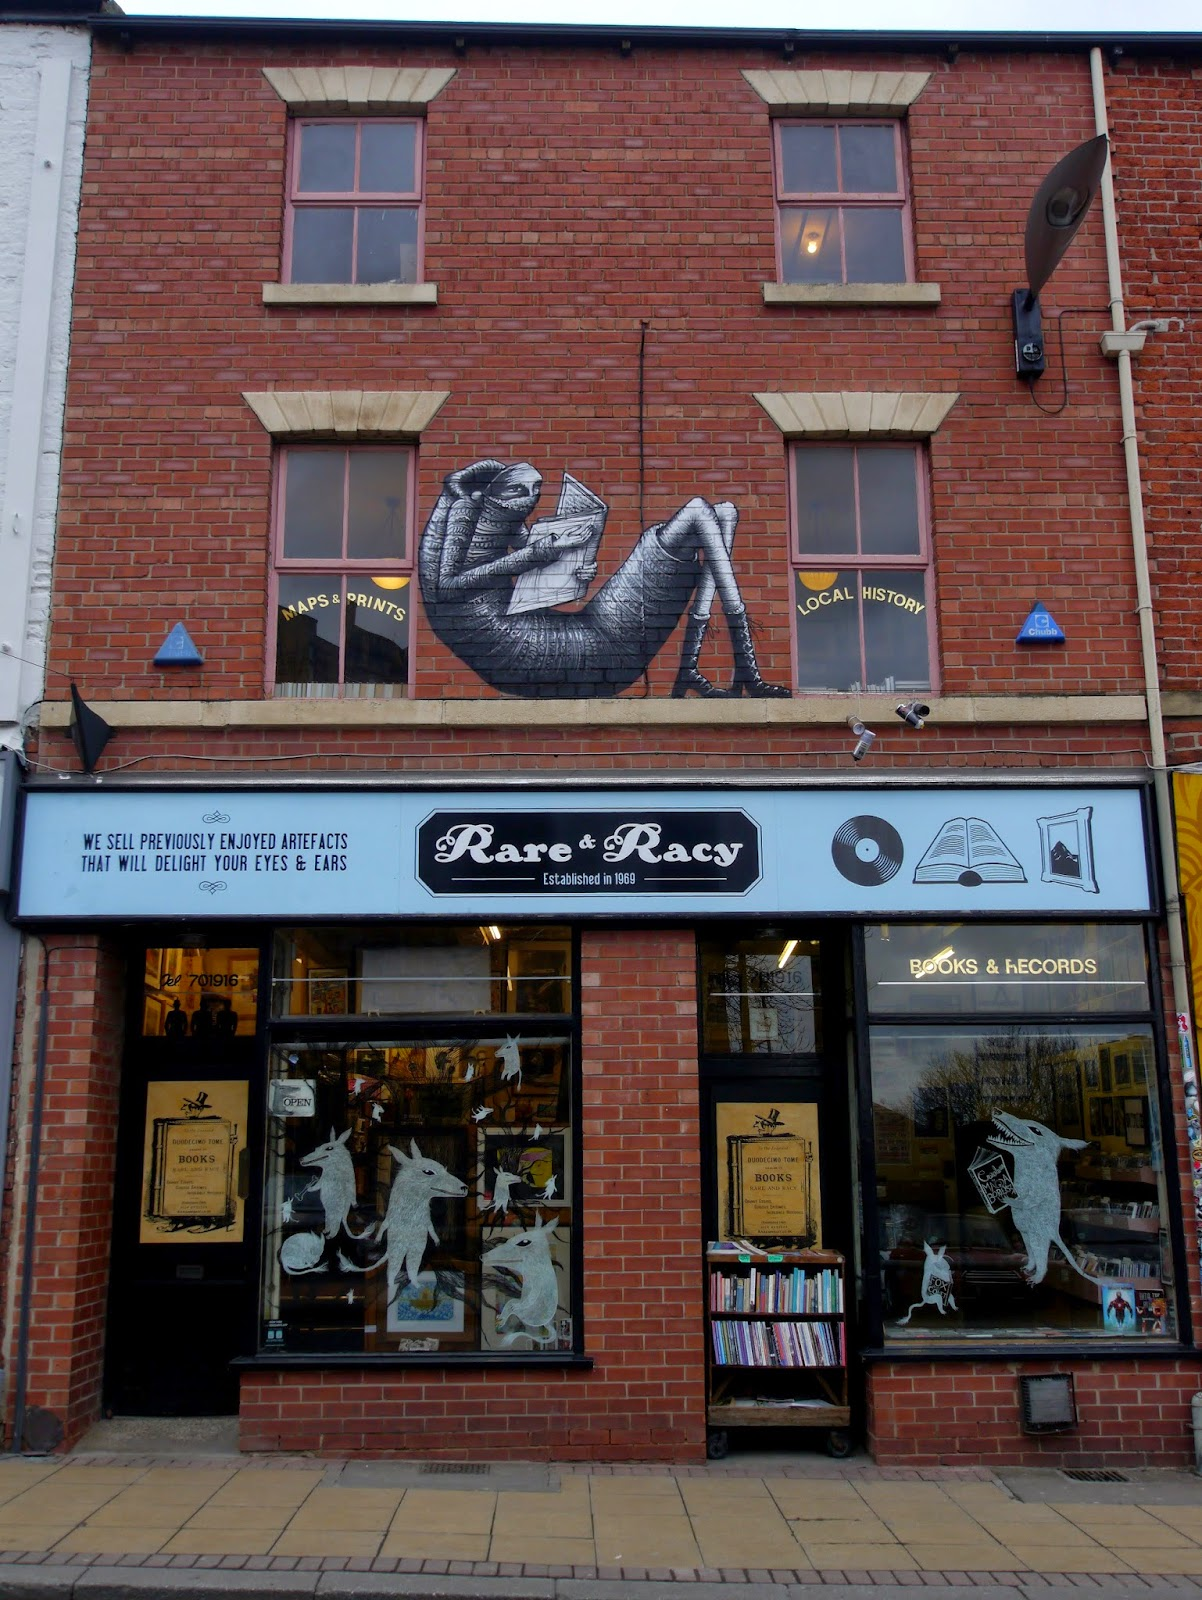 phlegm-rare-and-racy-new-mural-in-sheffield-02